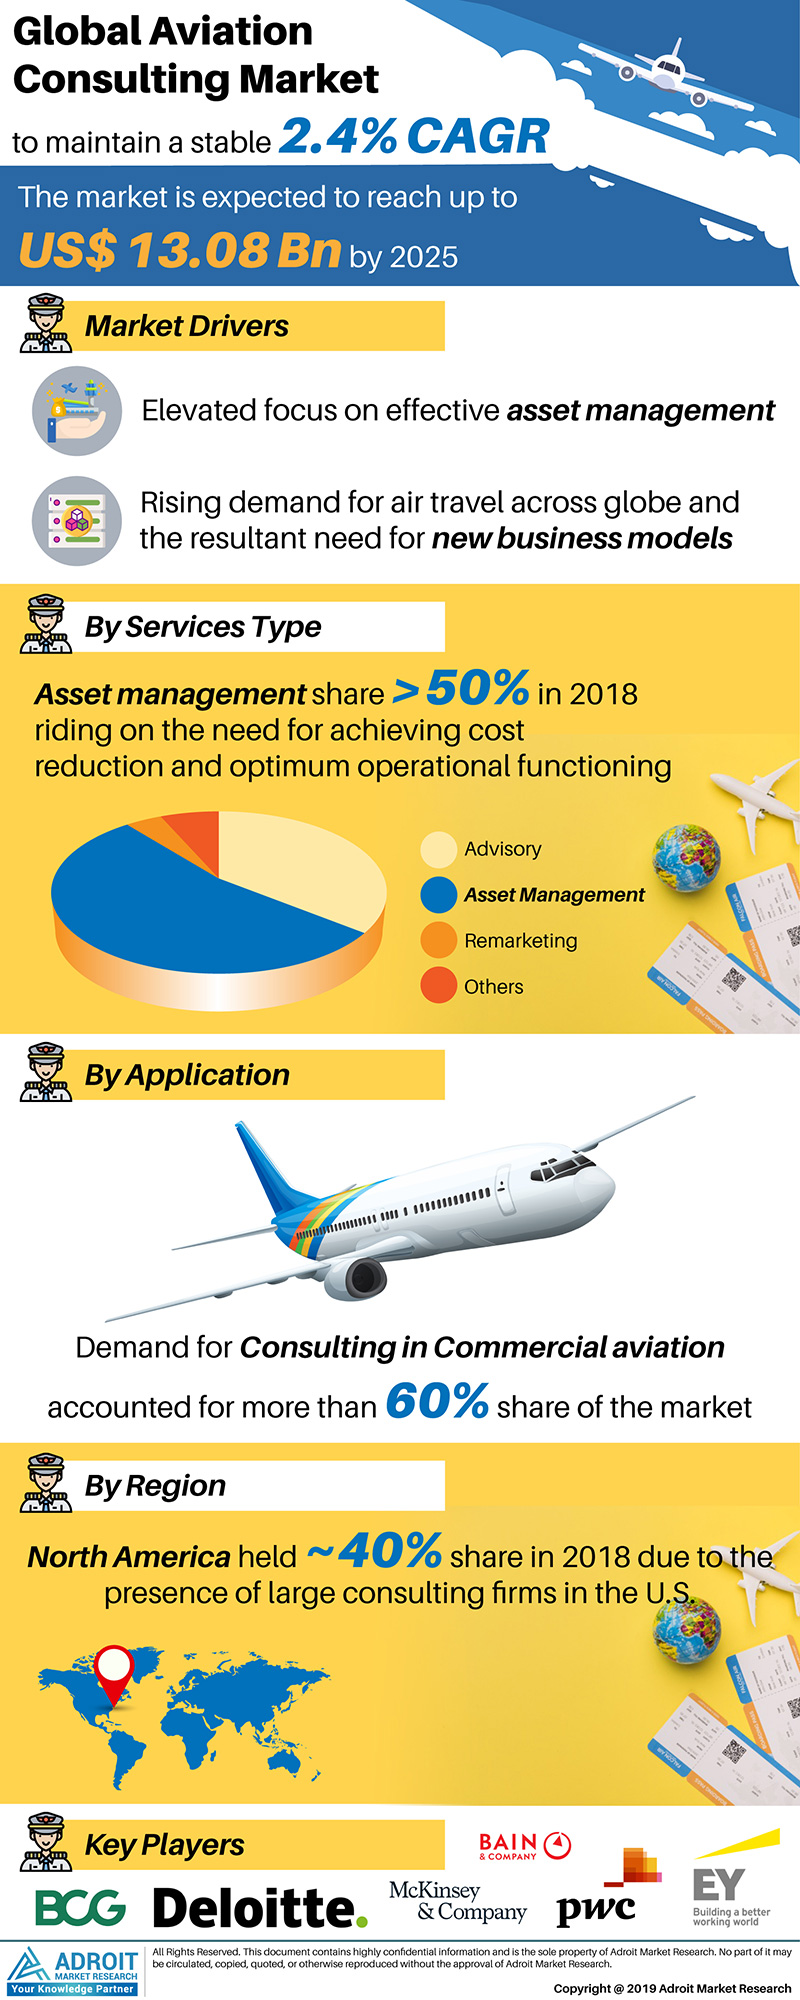 Global Aviation Consulting Market Size 2018 By Service Line, Application, Region and Forecast 2019 to 2025